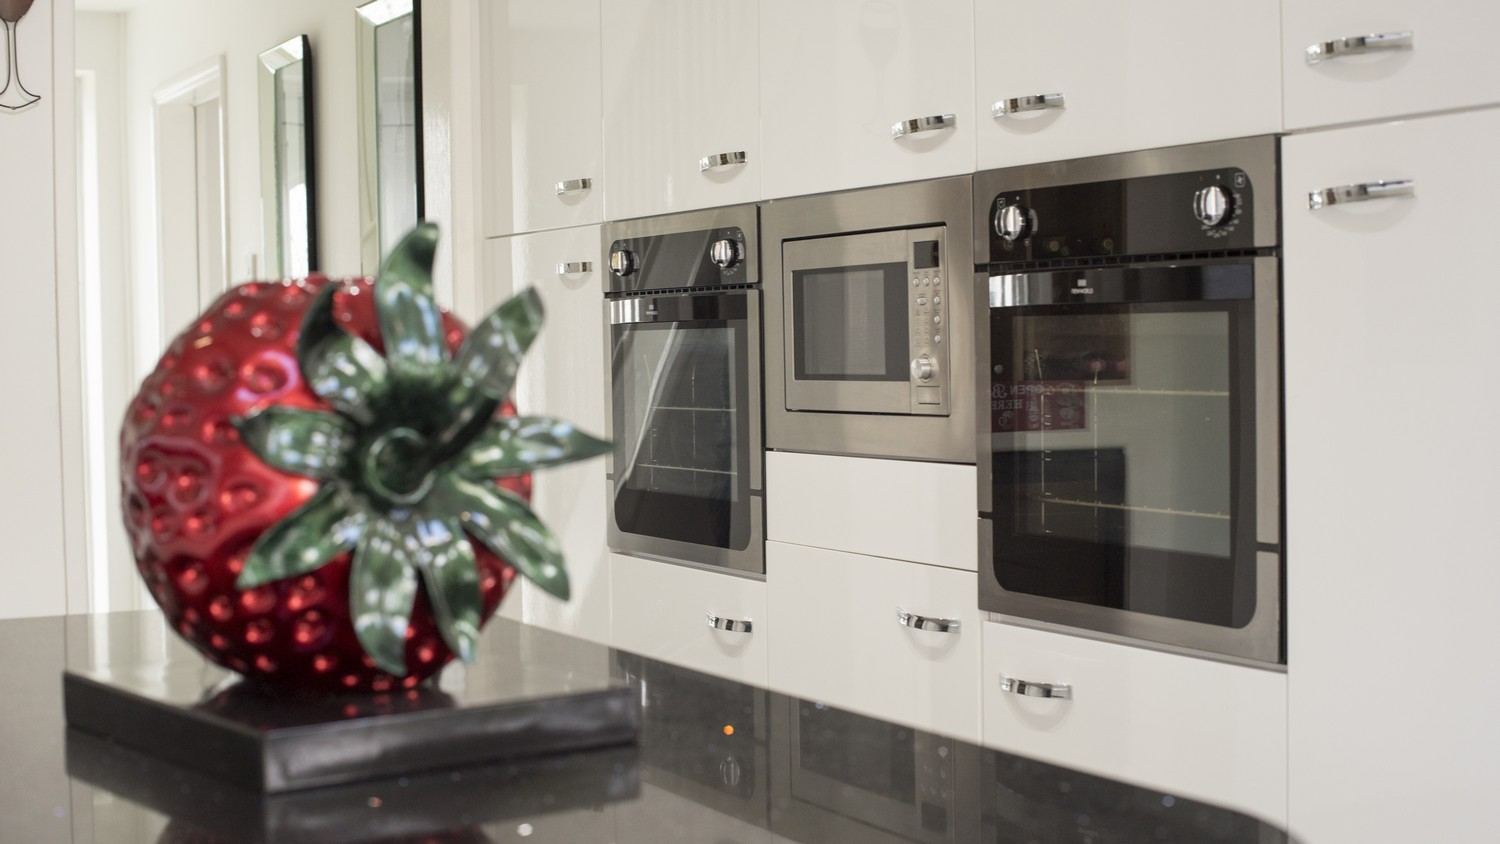 Close up of the Integrated kitchen appliances.